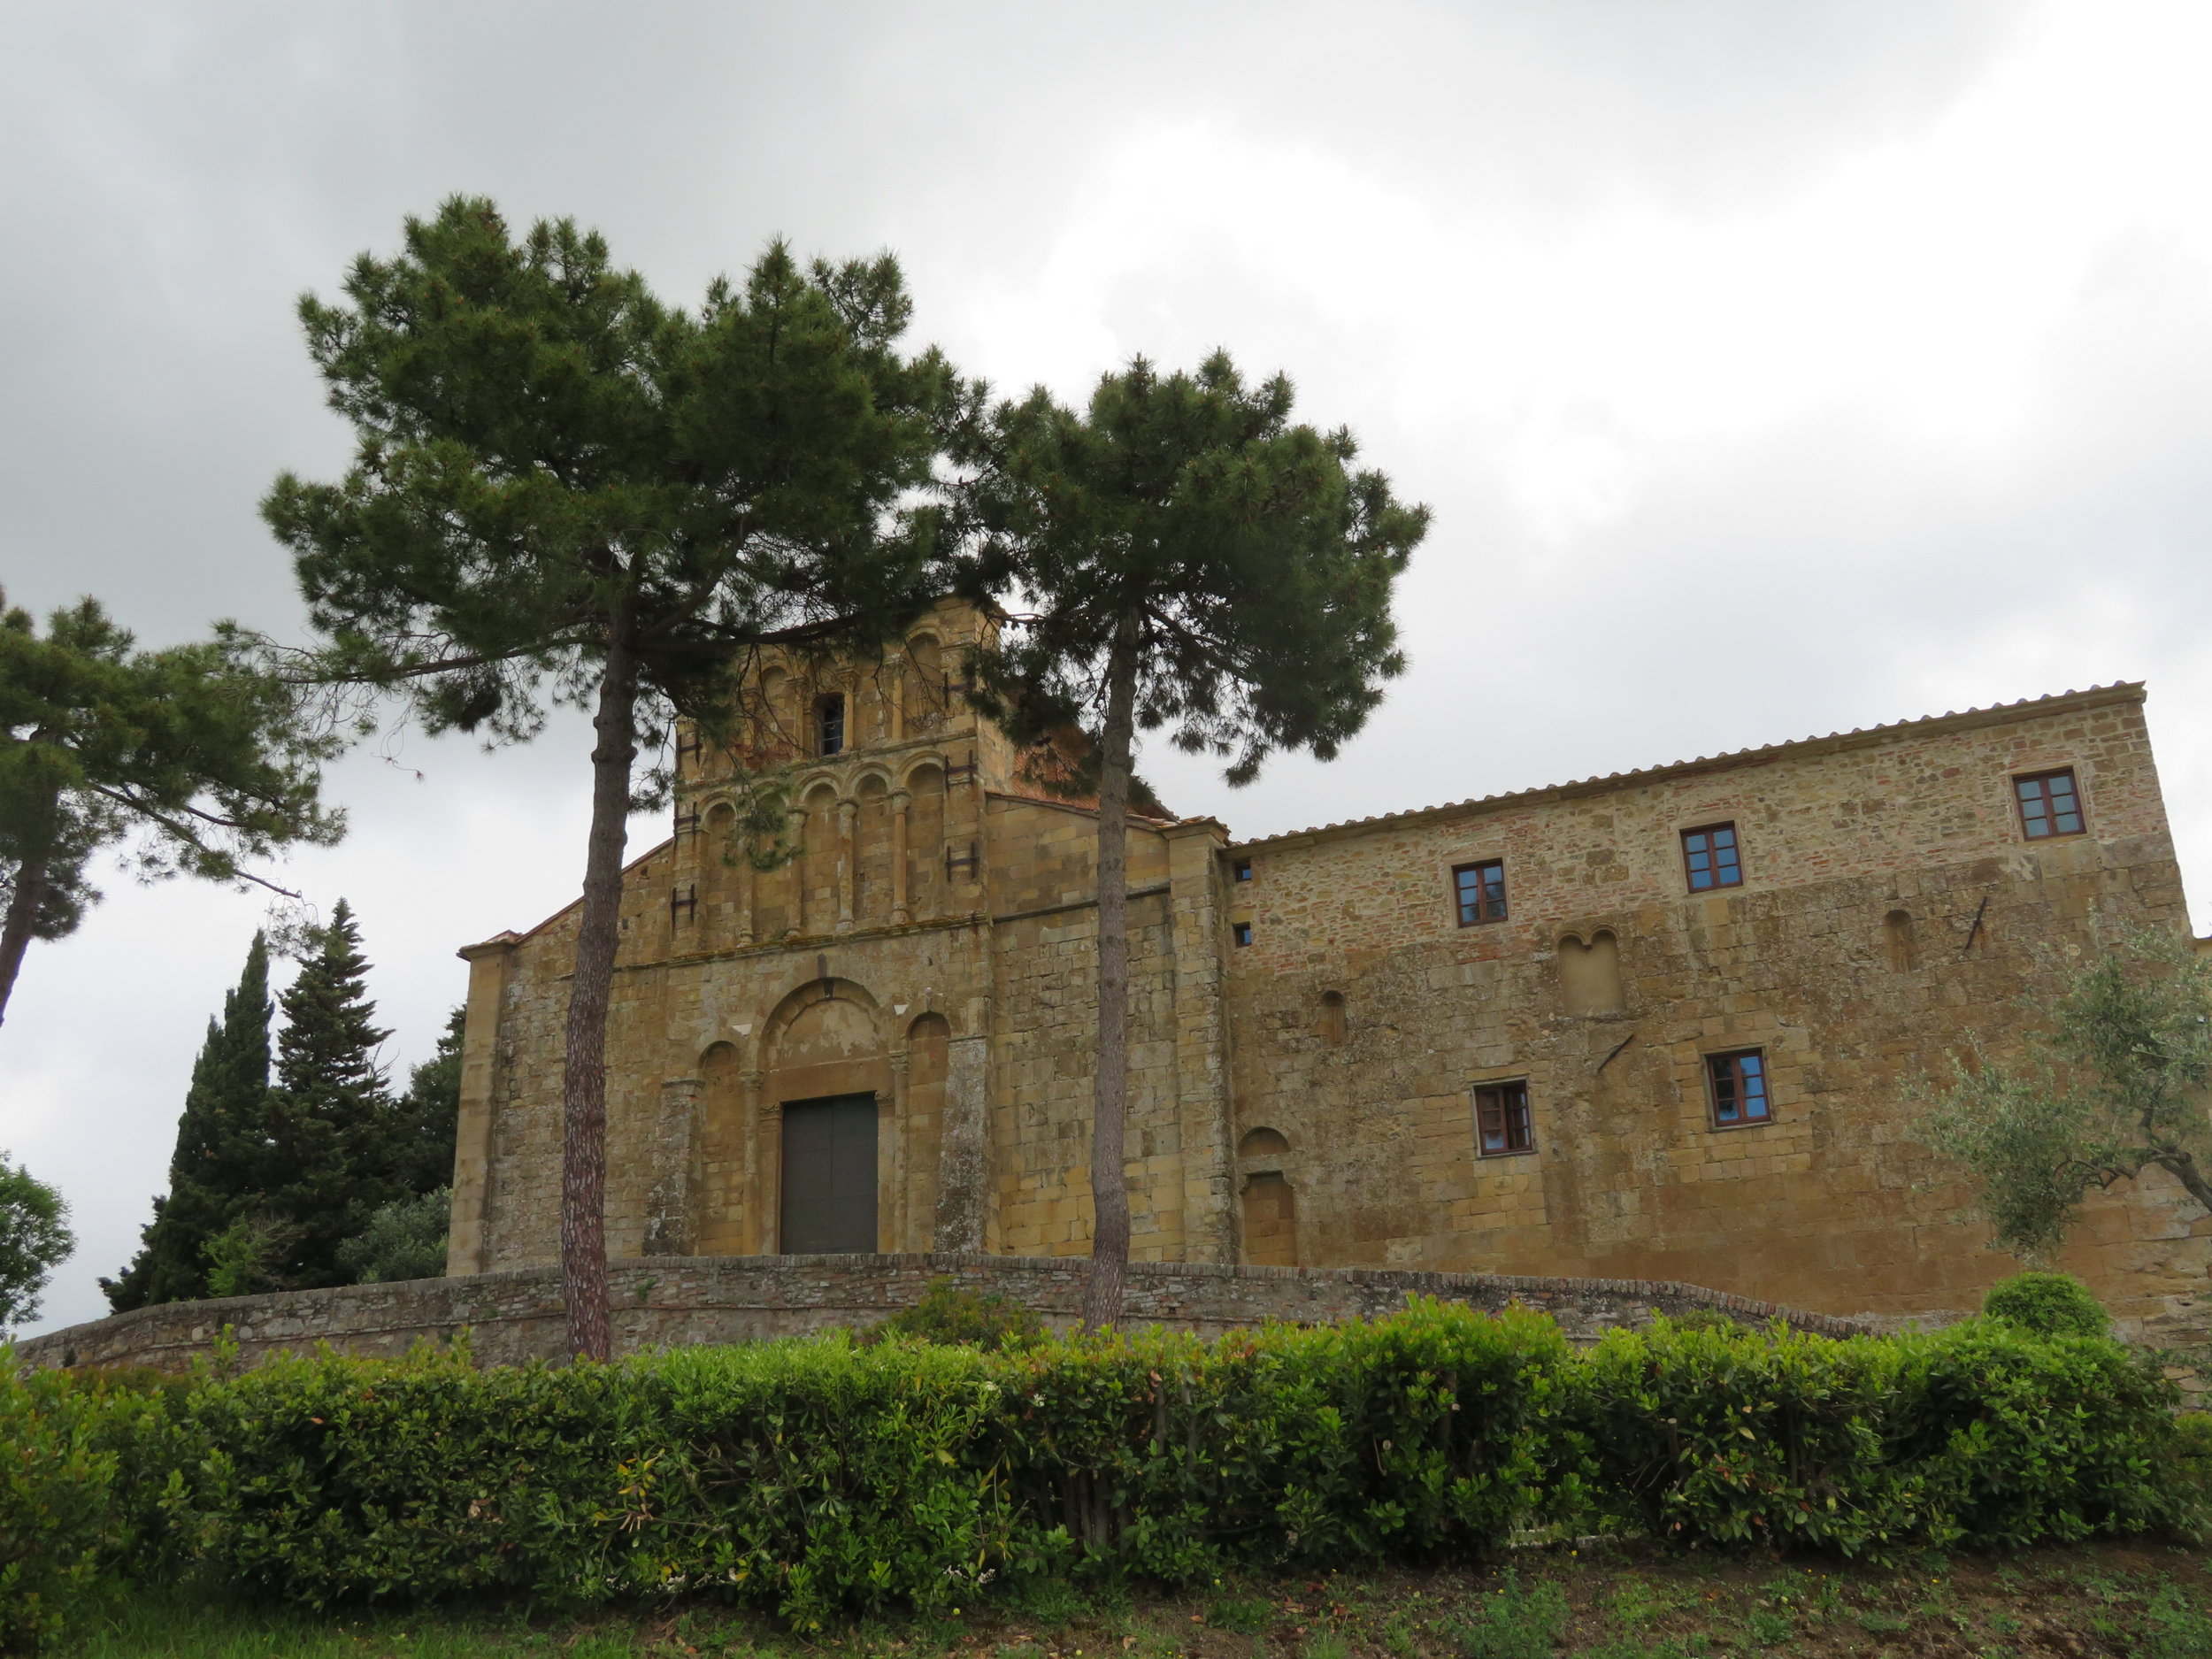 We passed by Pieve di Santa Maria Assunta a Chianni church in Gambassi Terme. It is mentioned in Archbishop Sigeric's chronicle as a place he stopped on his return from Rome ( c 990-994).